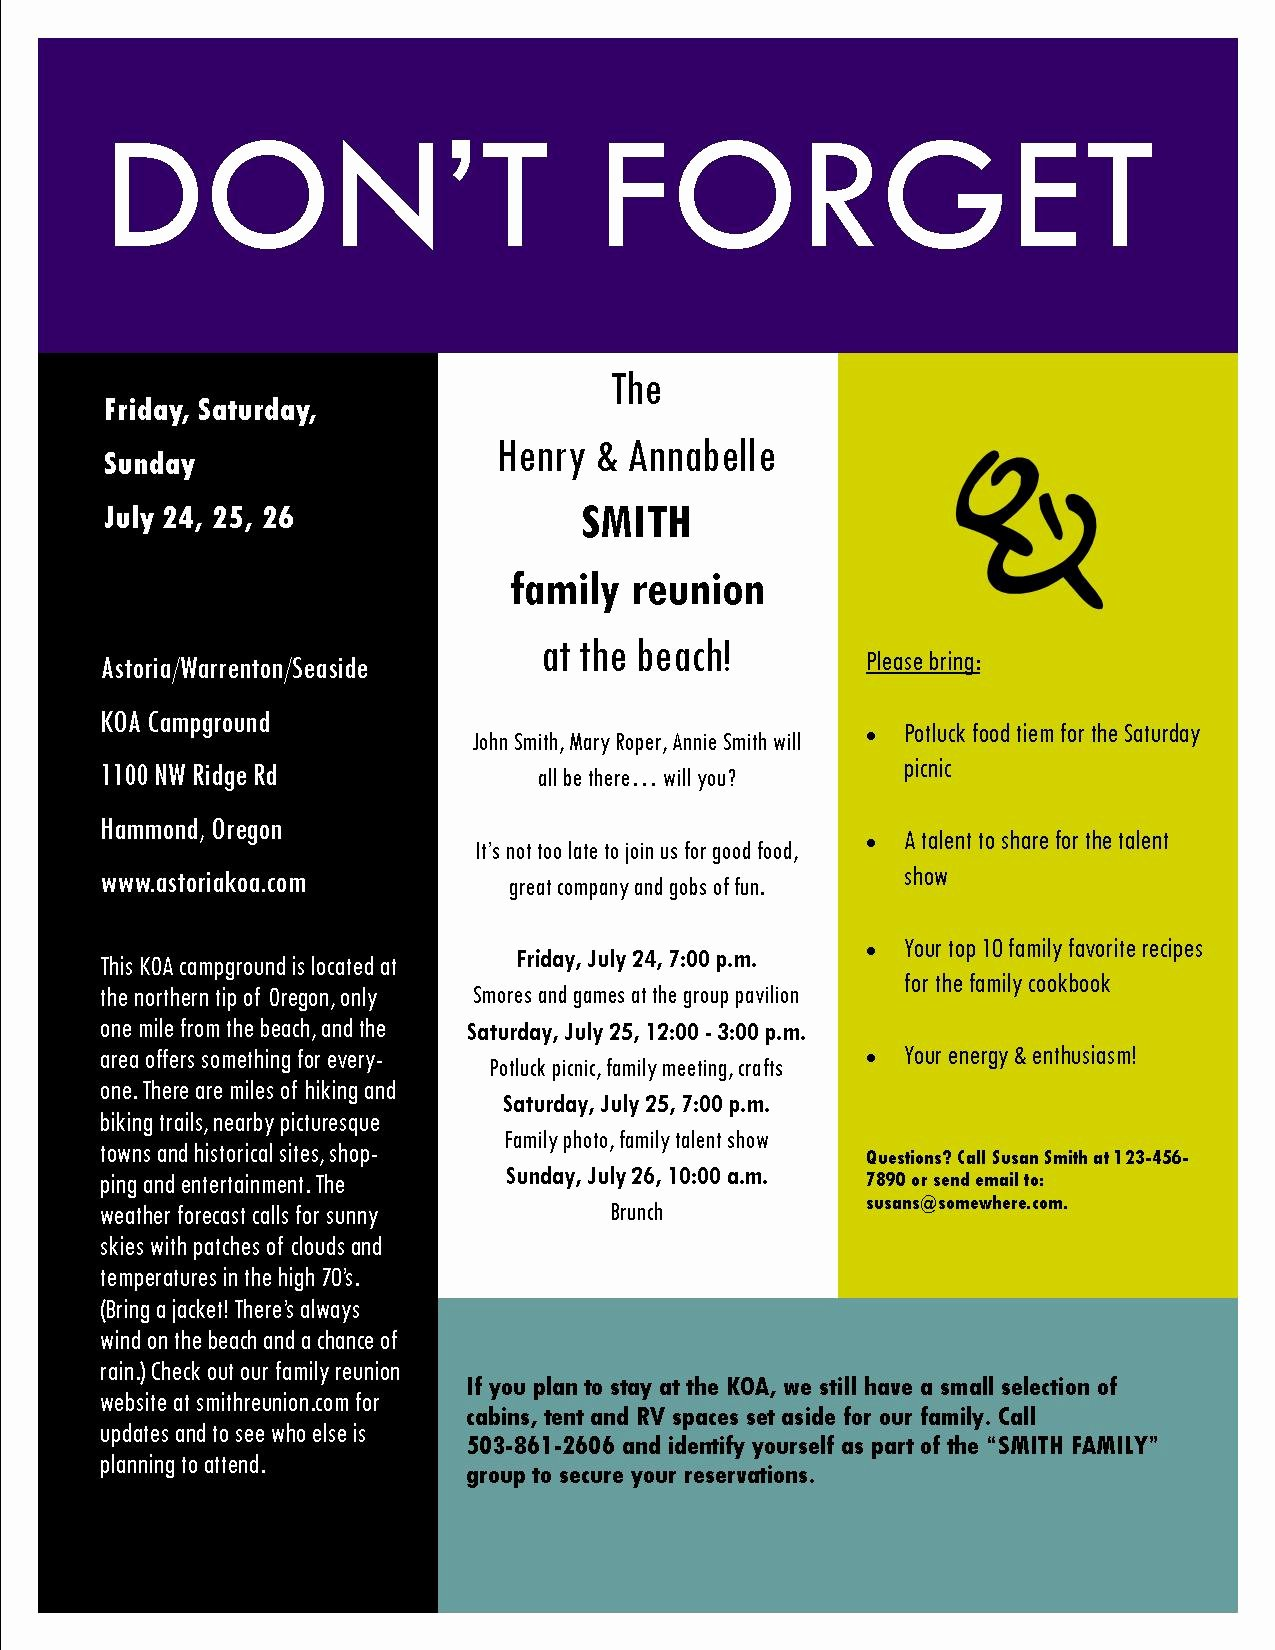 Sample Family Reunion Invitation Flyer Ideas for Reunions